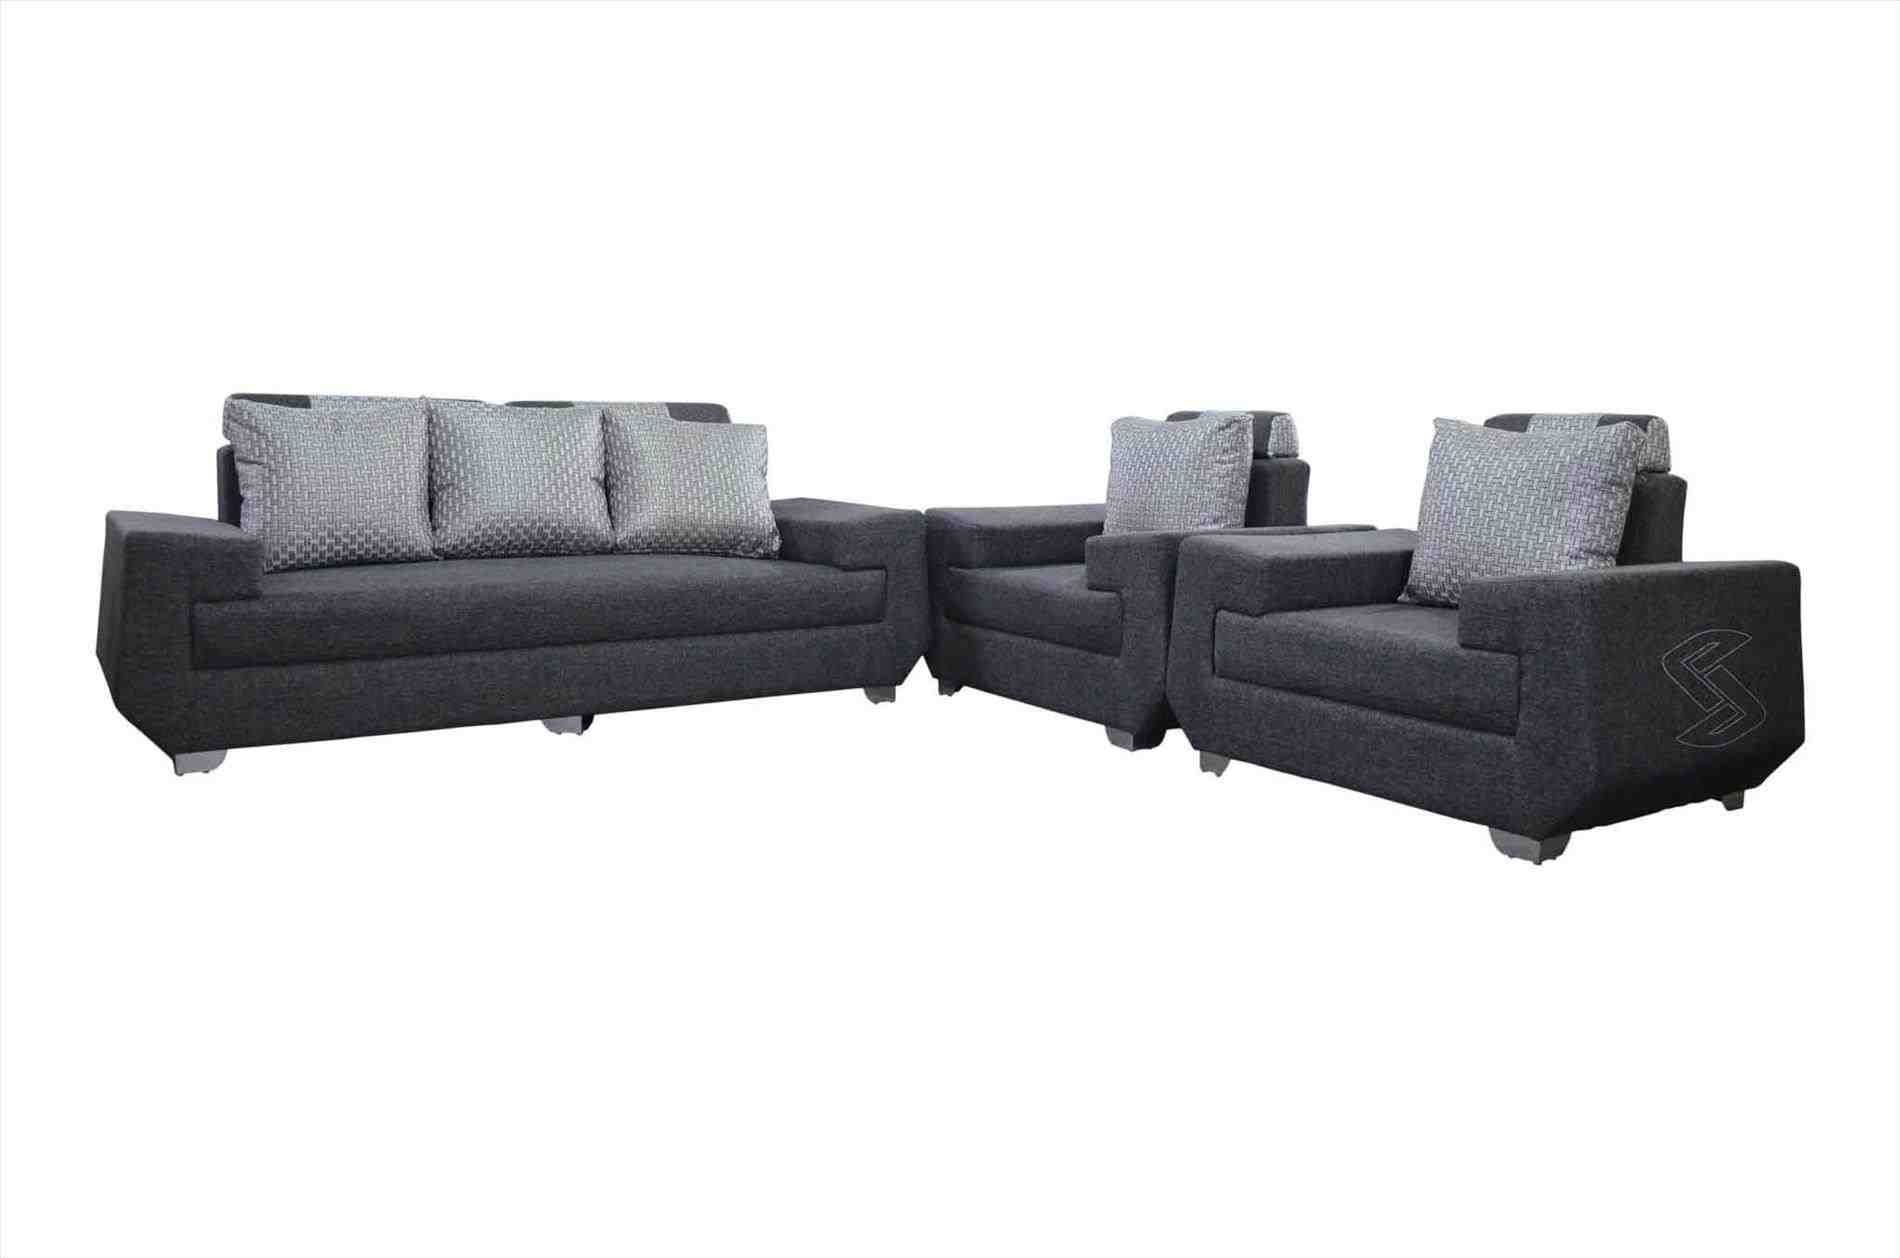 Sofa Set Repair In Hyderabad Sofa Sets Online Hyderabad Review Home Decor